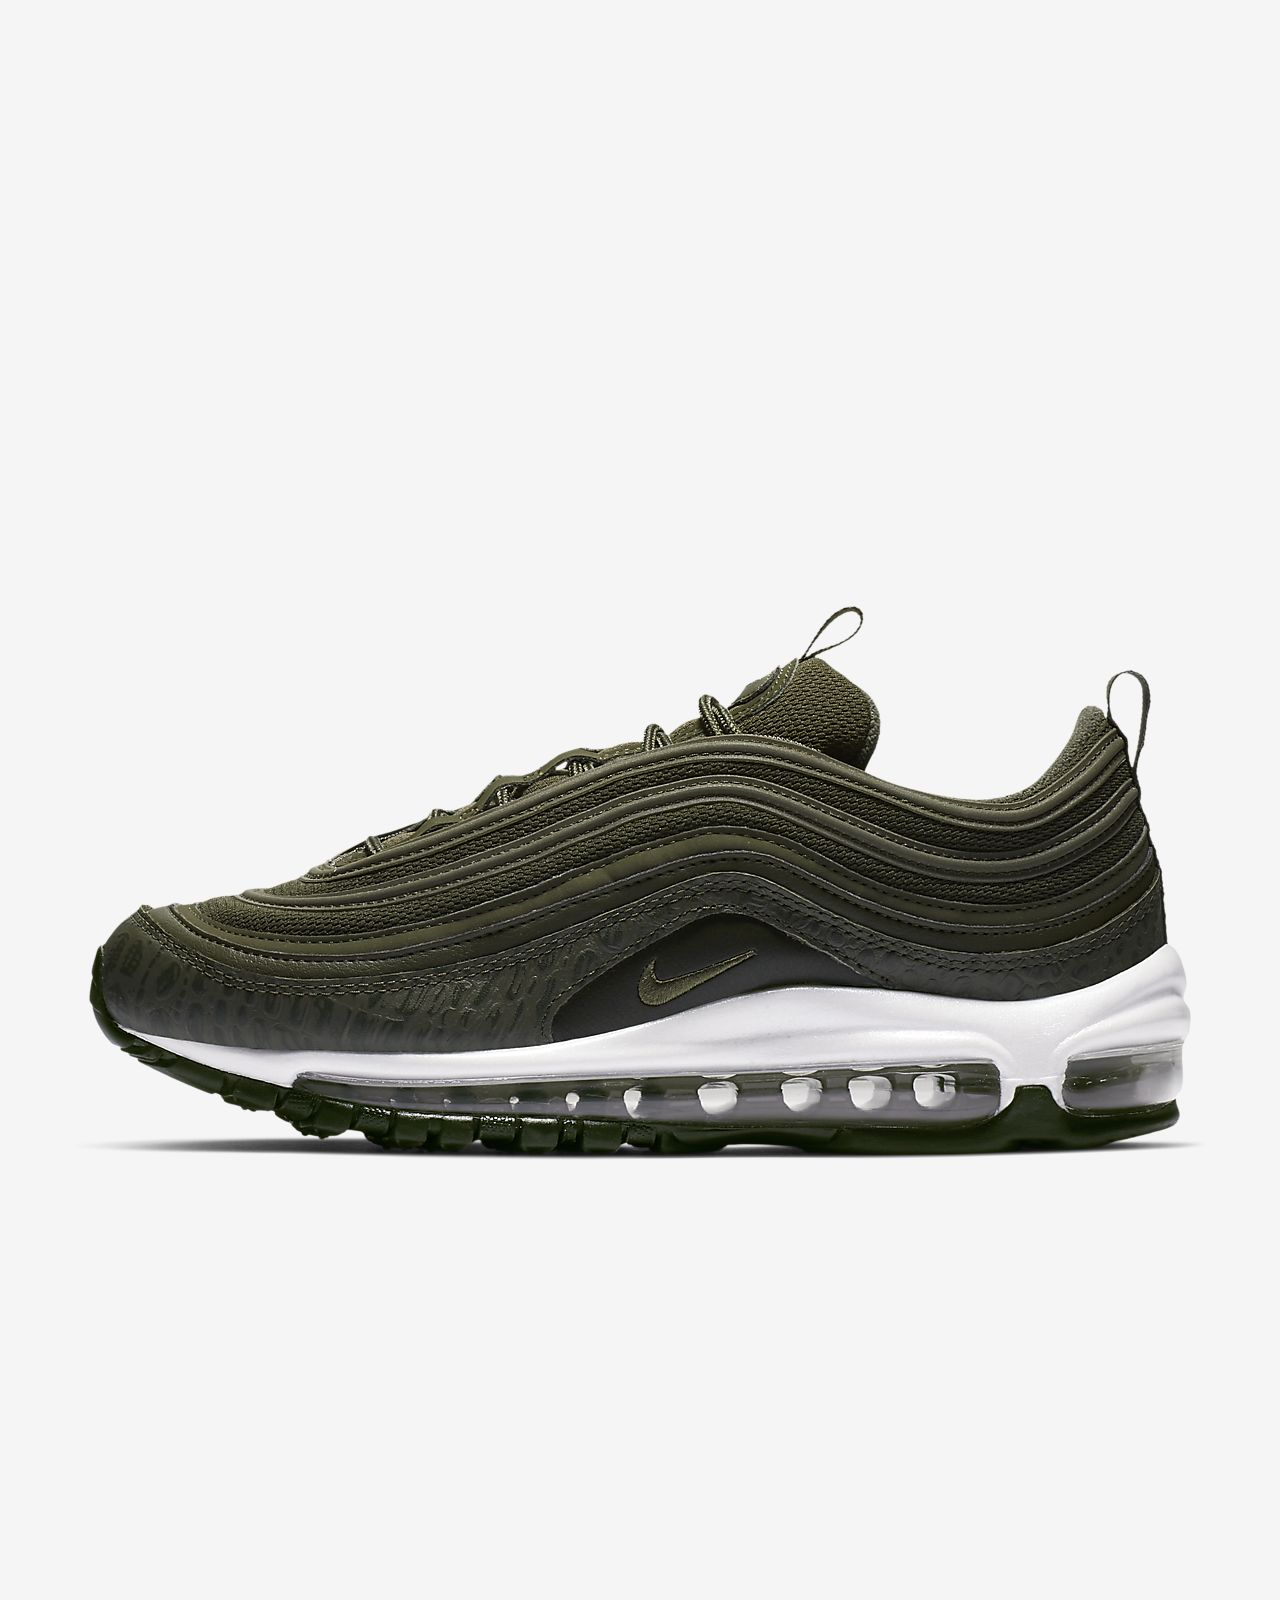 a388ca50bb22 Nike Air Max 97 LX Women s Shoe. Nike.com CA